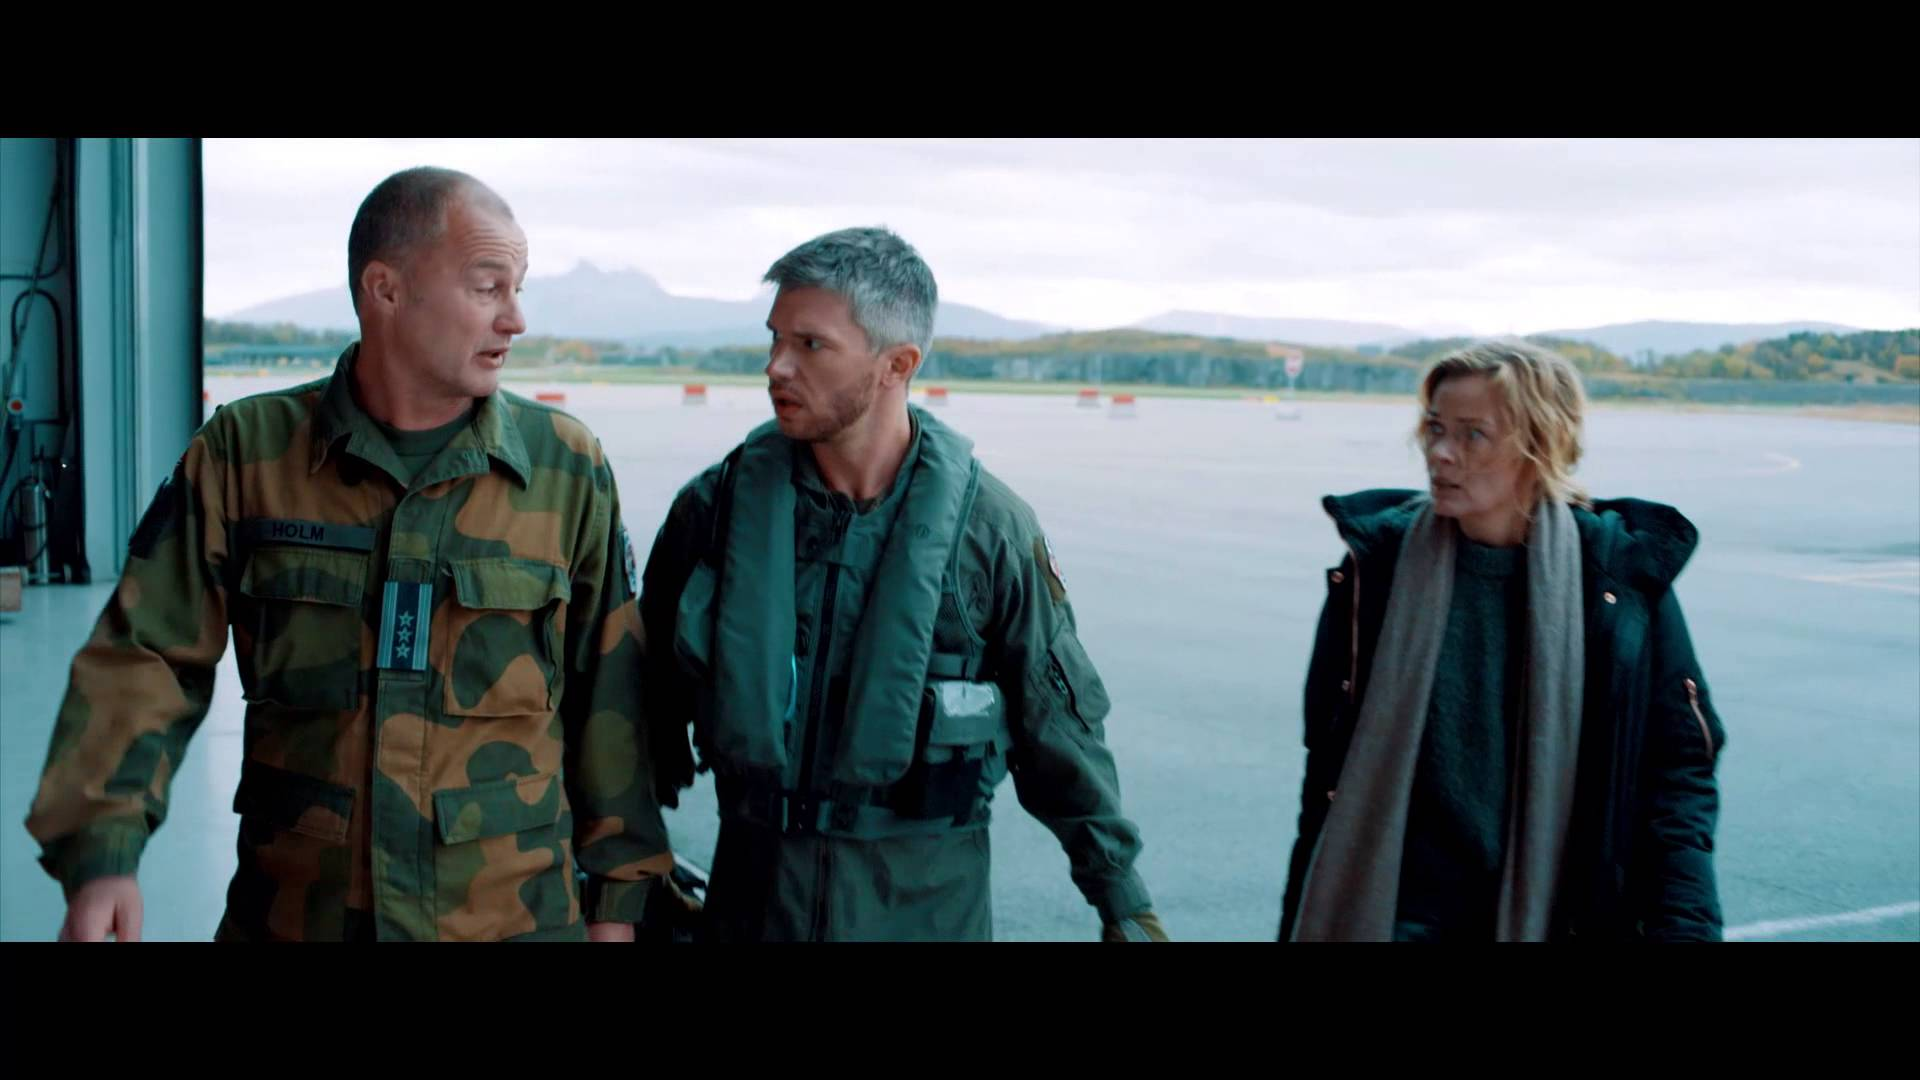 Operasjon Arktis in Theatres in Norway. A Movie for All